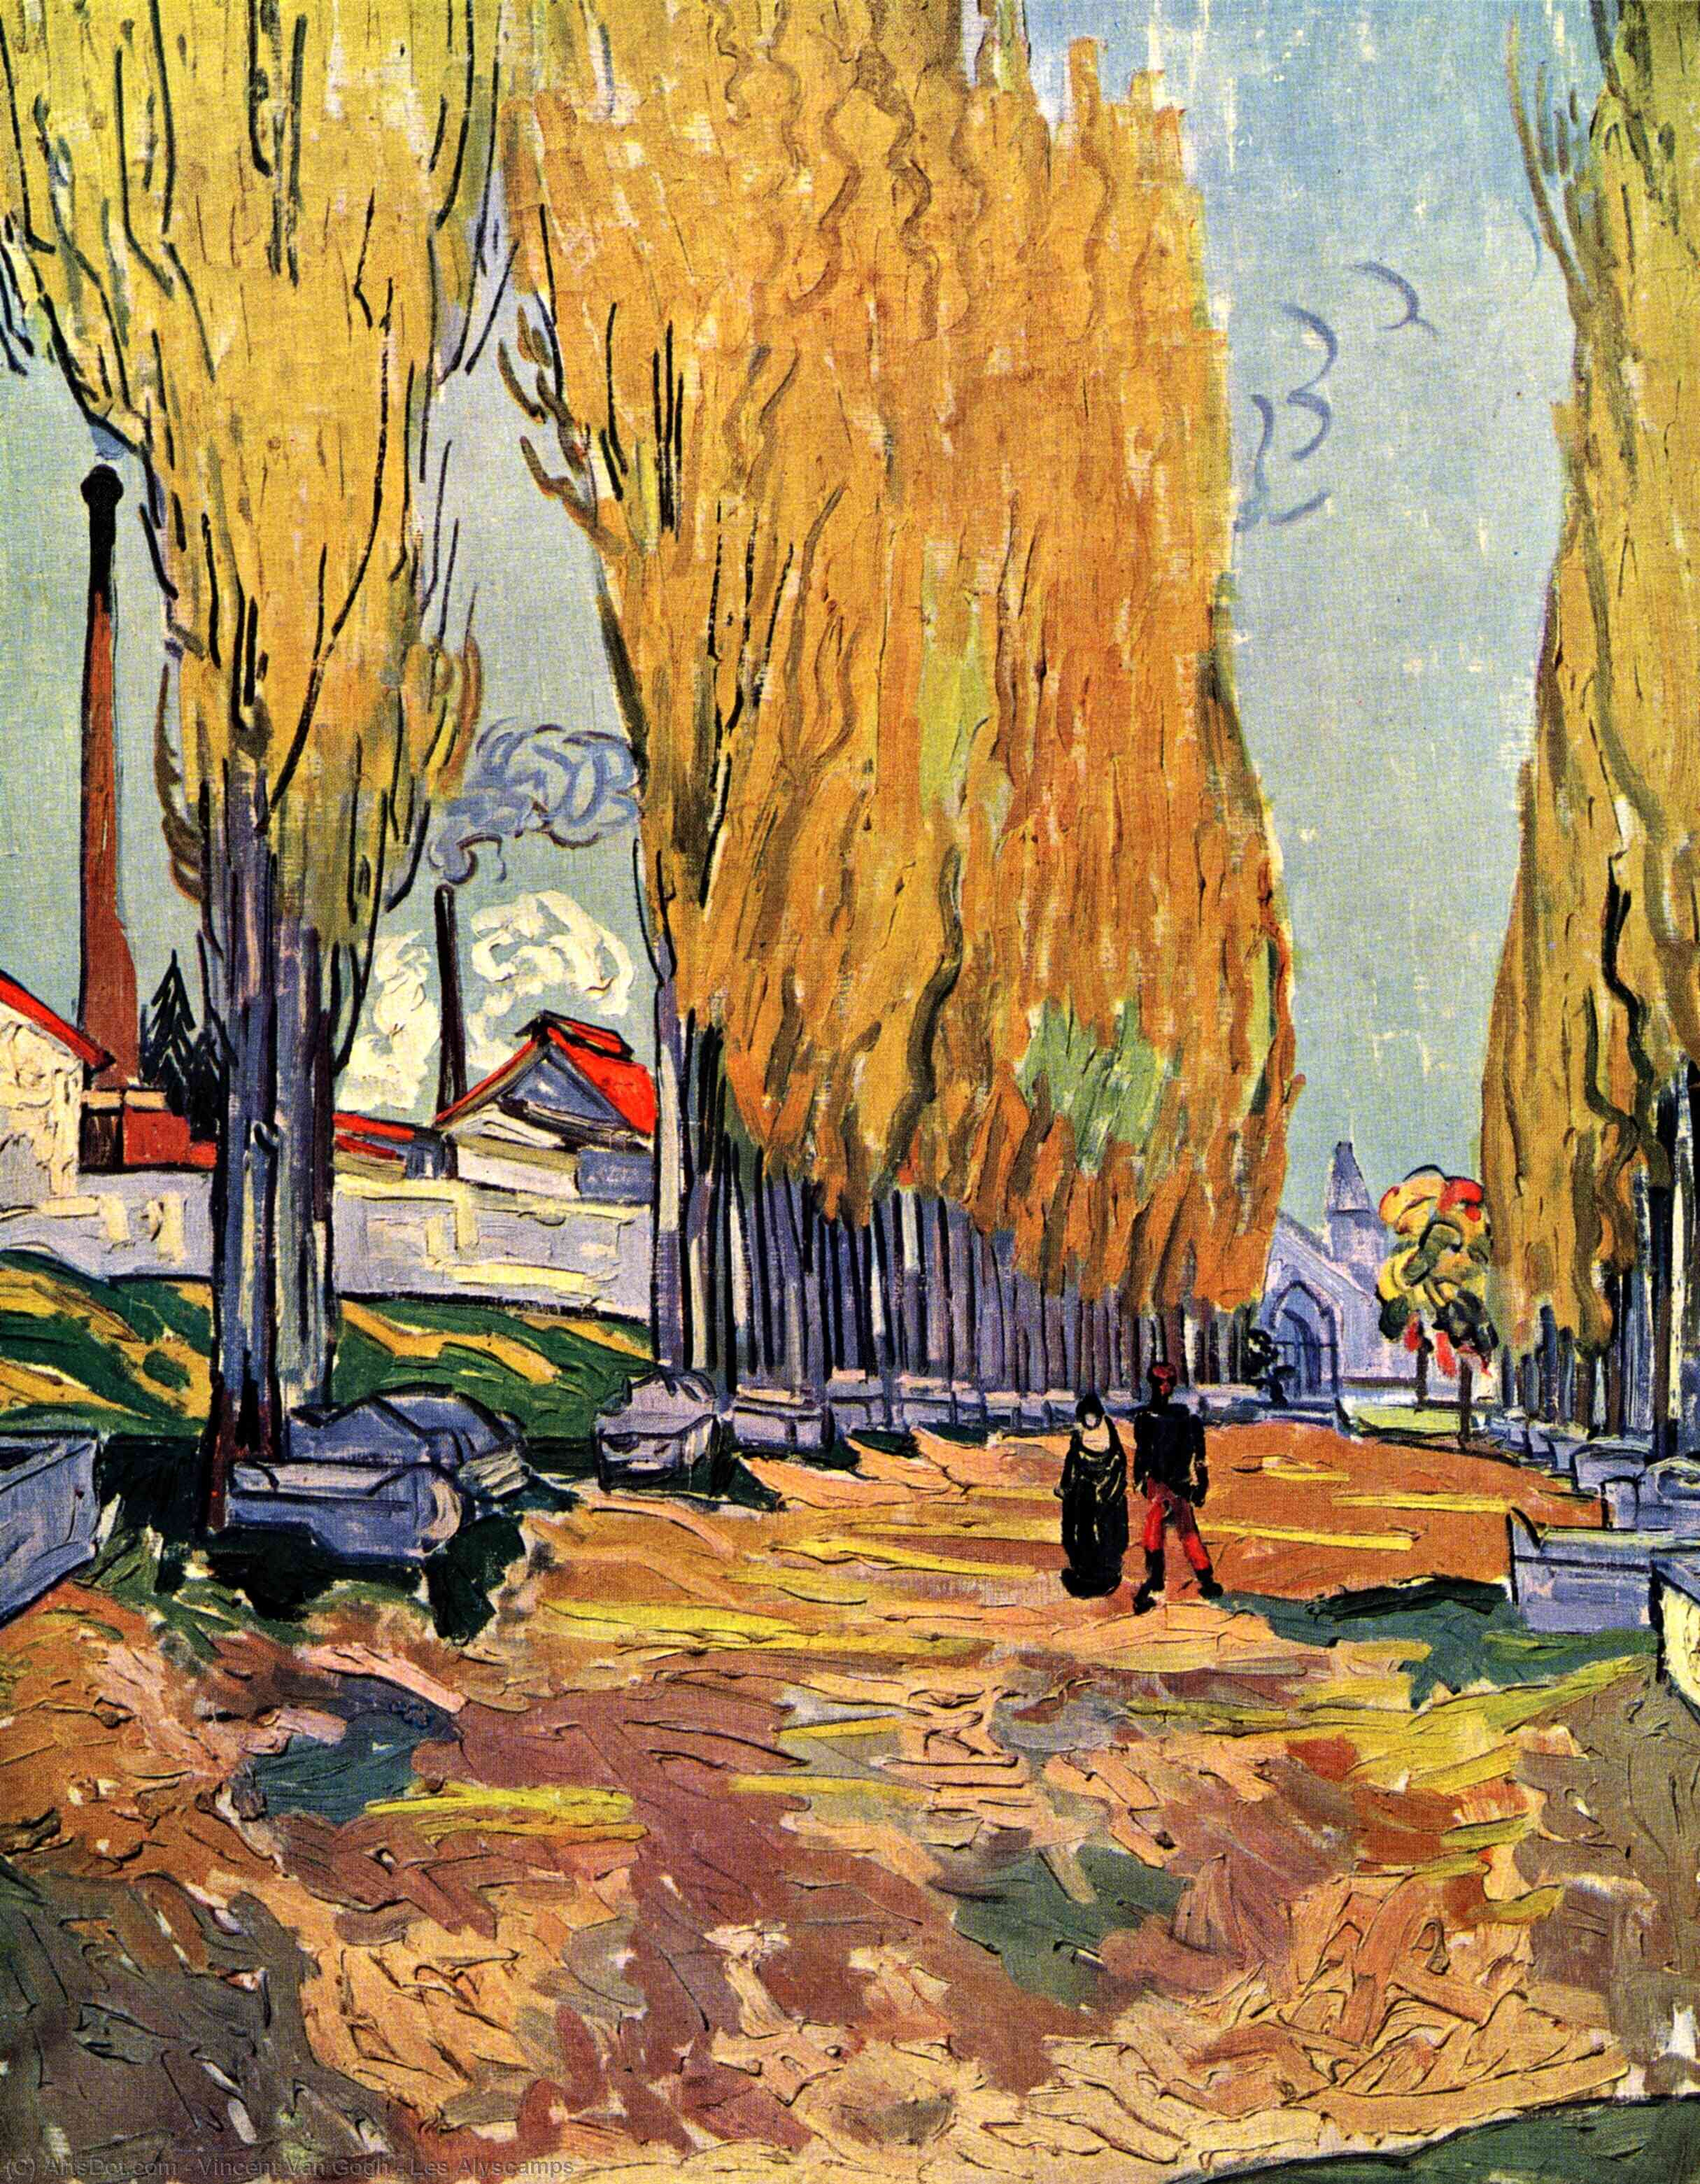 Wikioo.org - The Encyclopedia of Fine Arts - Painting, Artwork by Vincent Van Gogh - Les Alyscamps